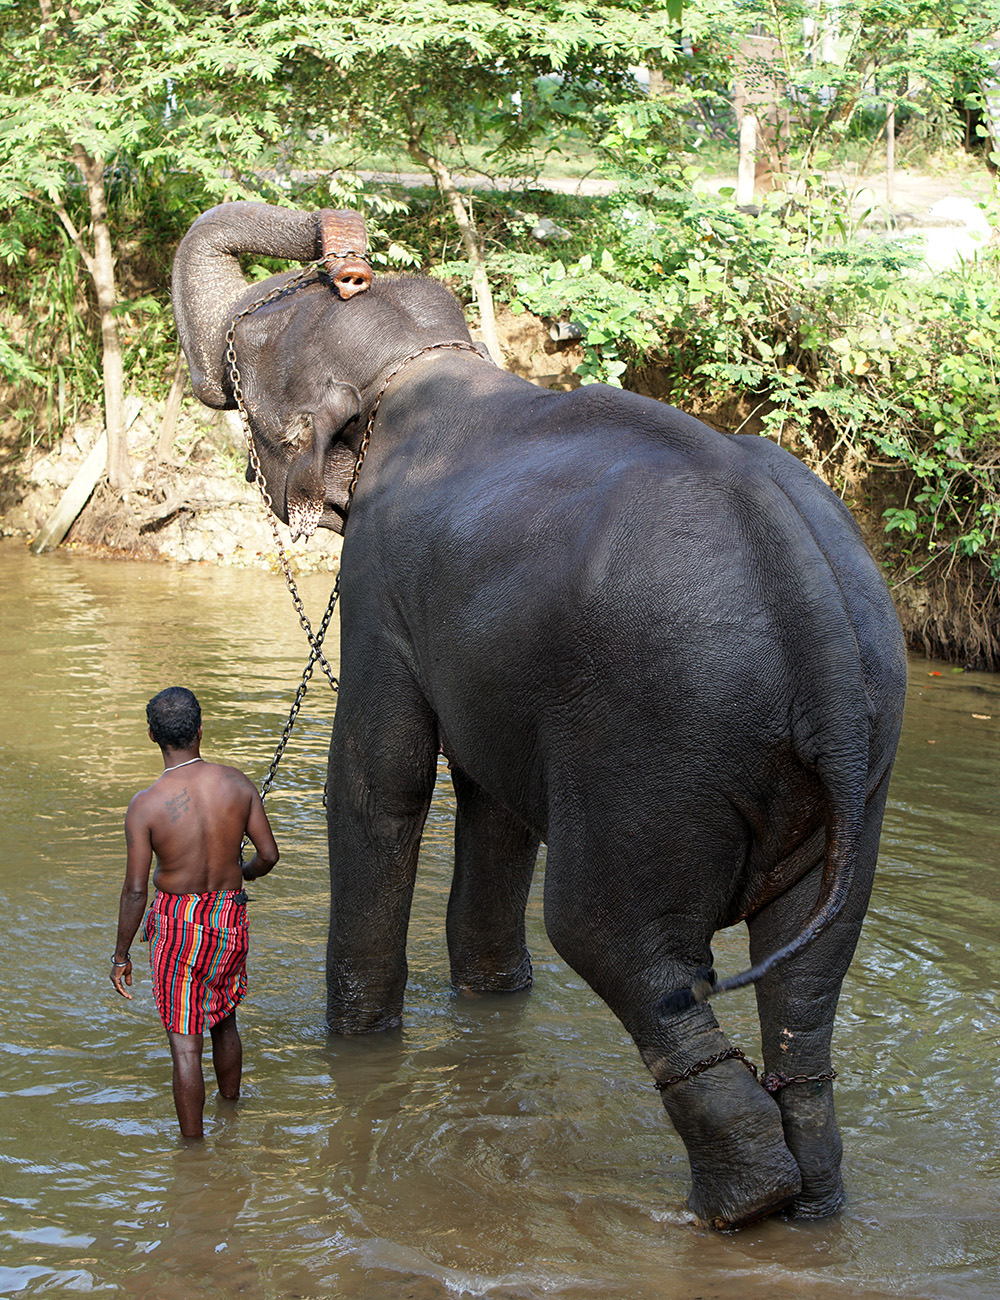 An elephant with owner in Sri Lanka.